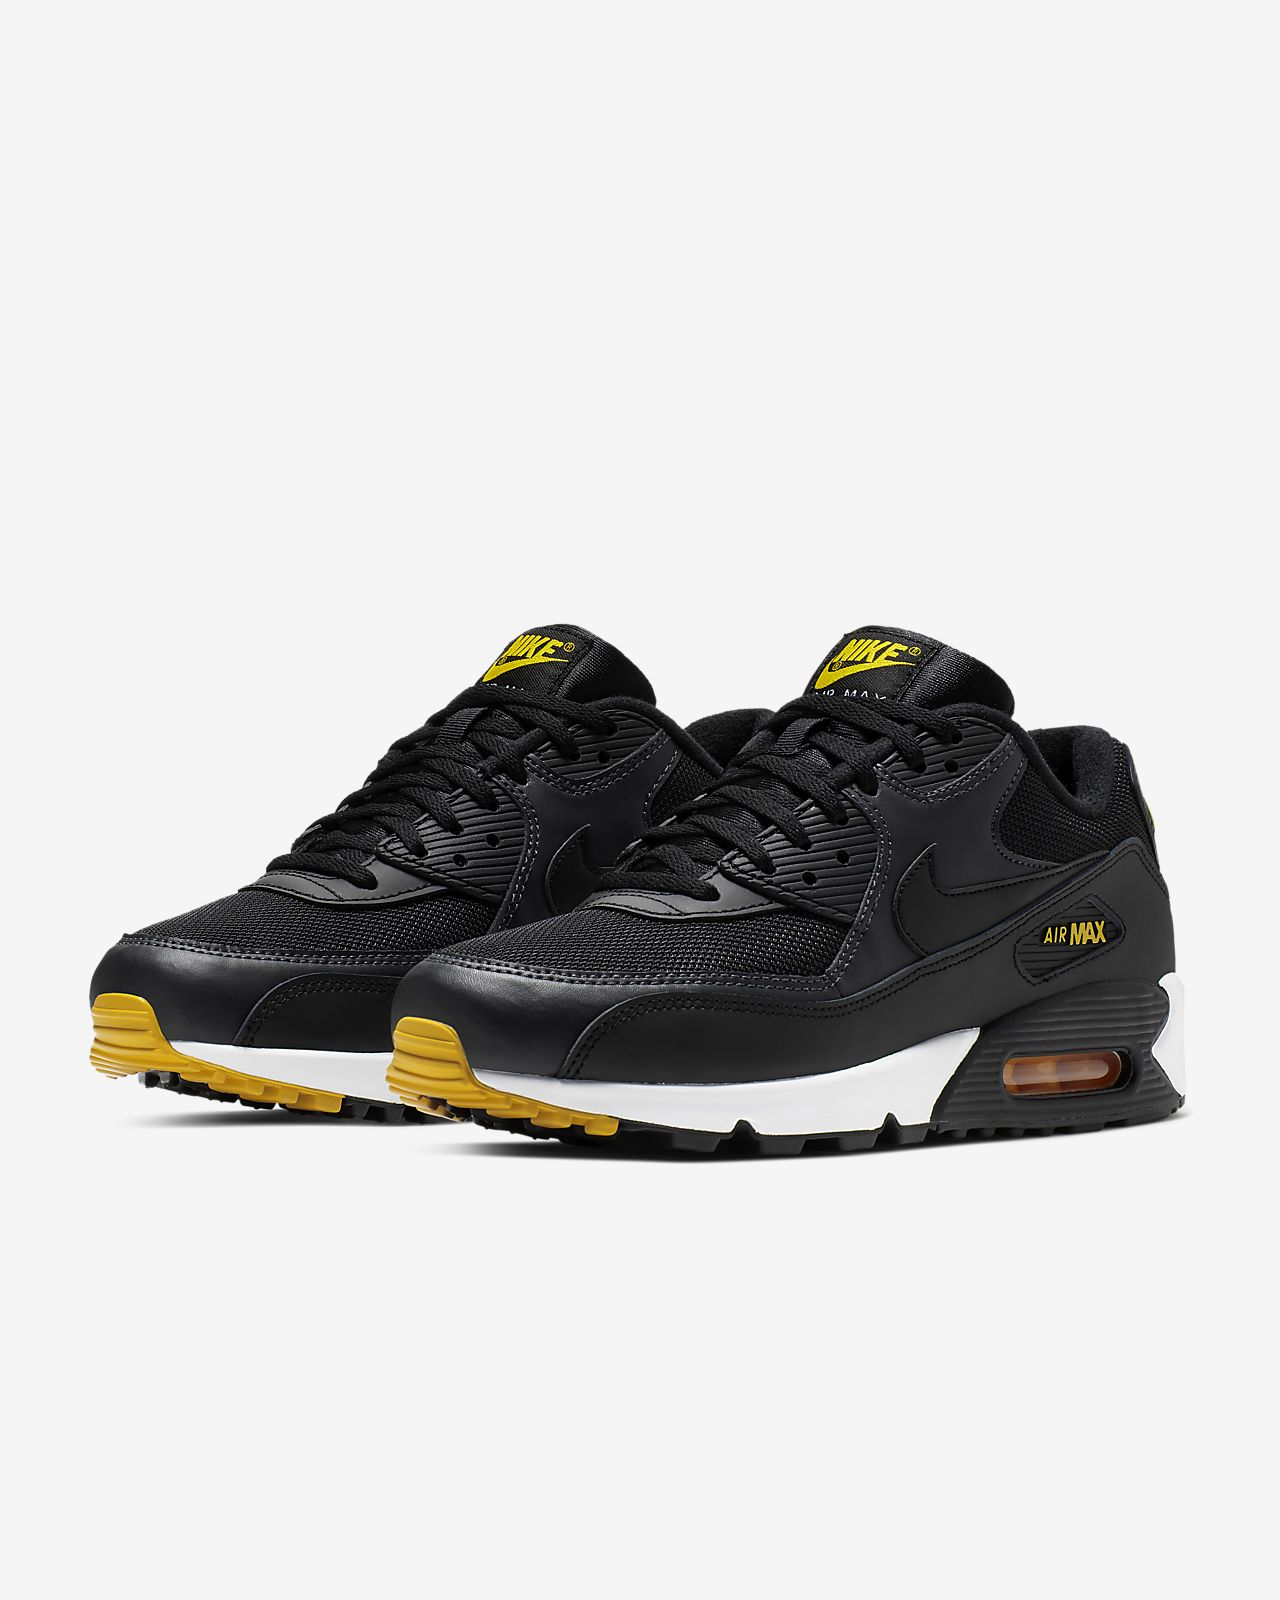 wholesale dealer e7b51 13a18 Chaussure Nike Air Max 90 Essential pour Homme. Nike.com CA